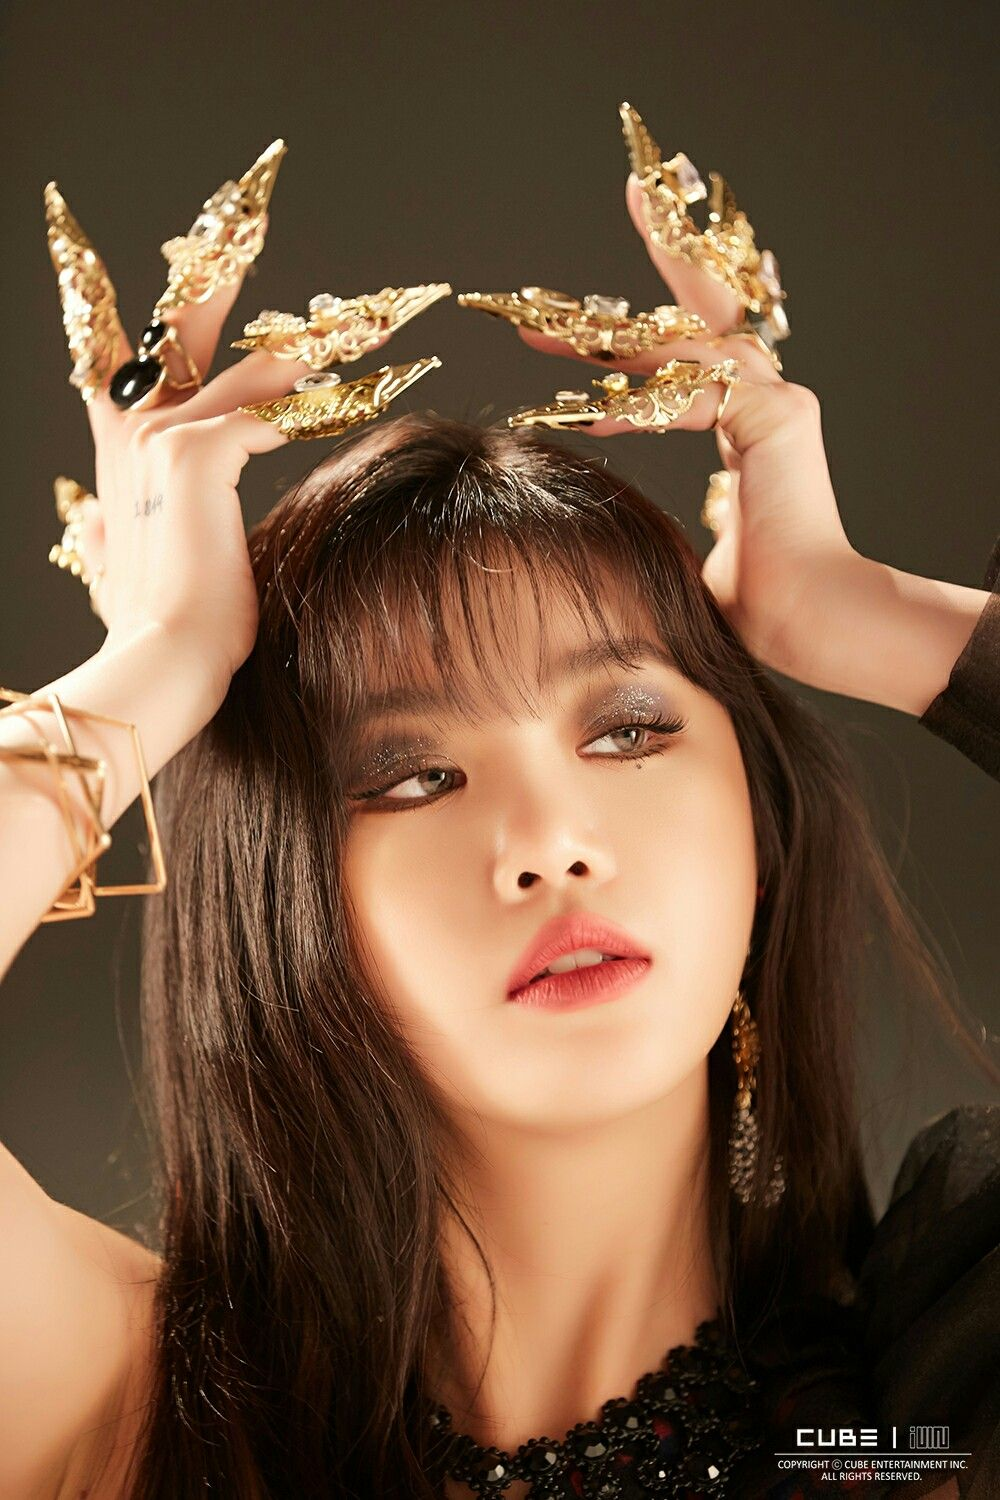 Pin By Yoohyeon S Bangs On G I Dle Idol Kpop Girl Groups Kpop Aesthetic